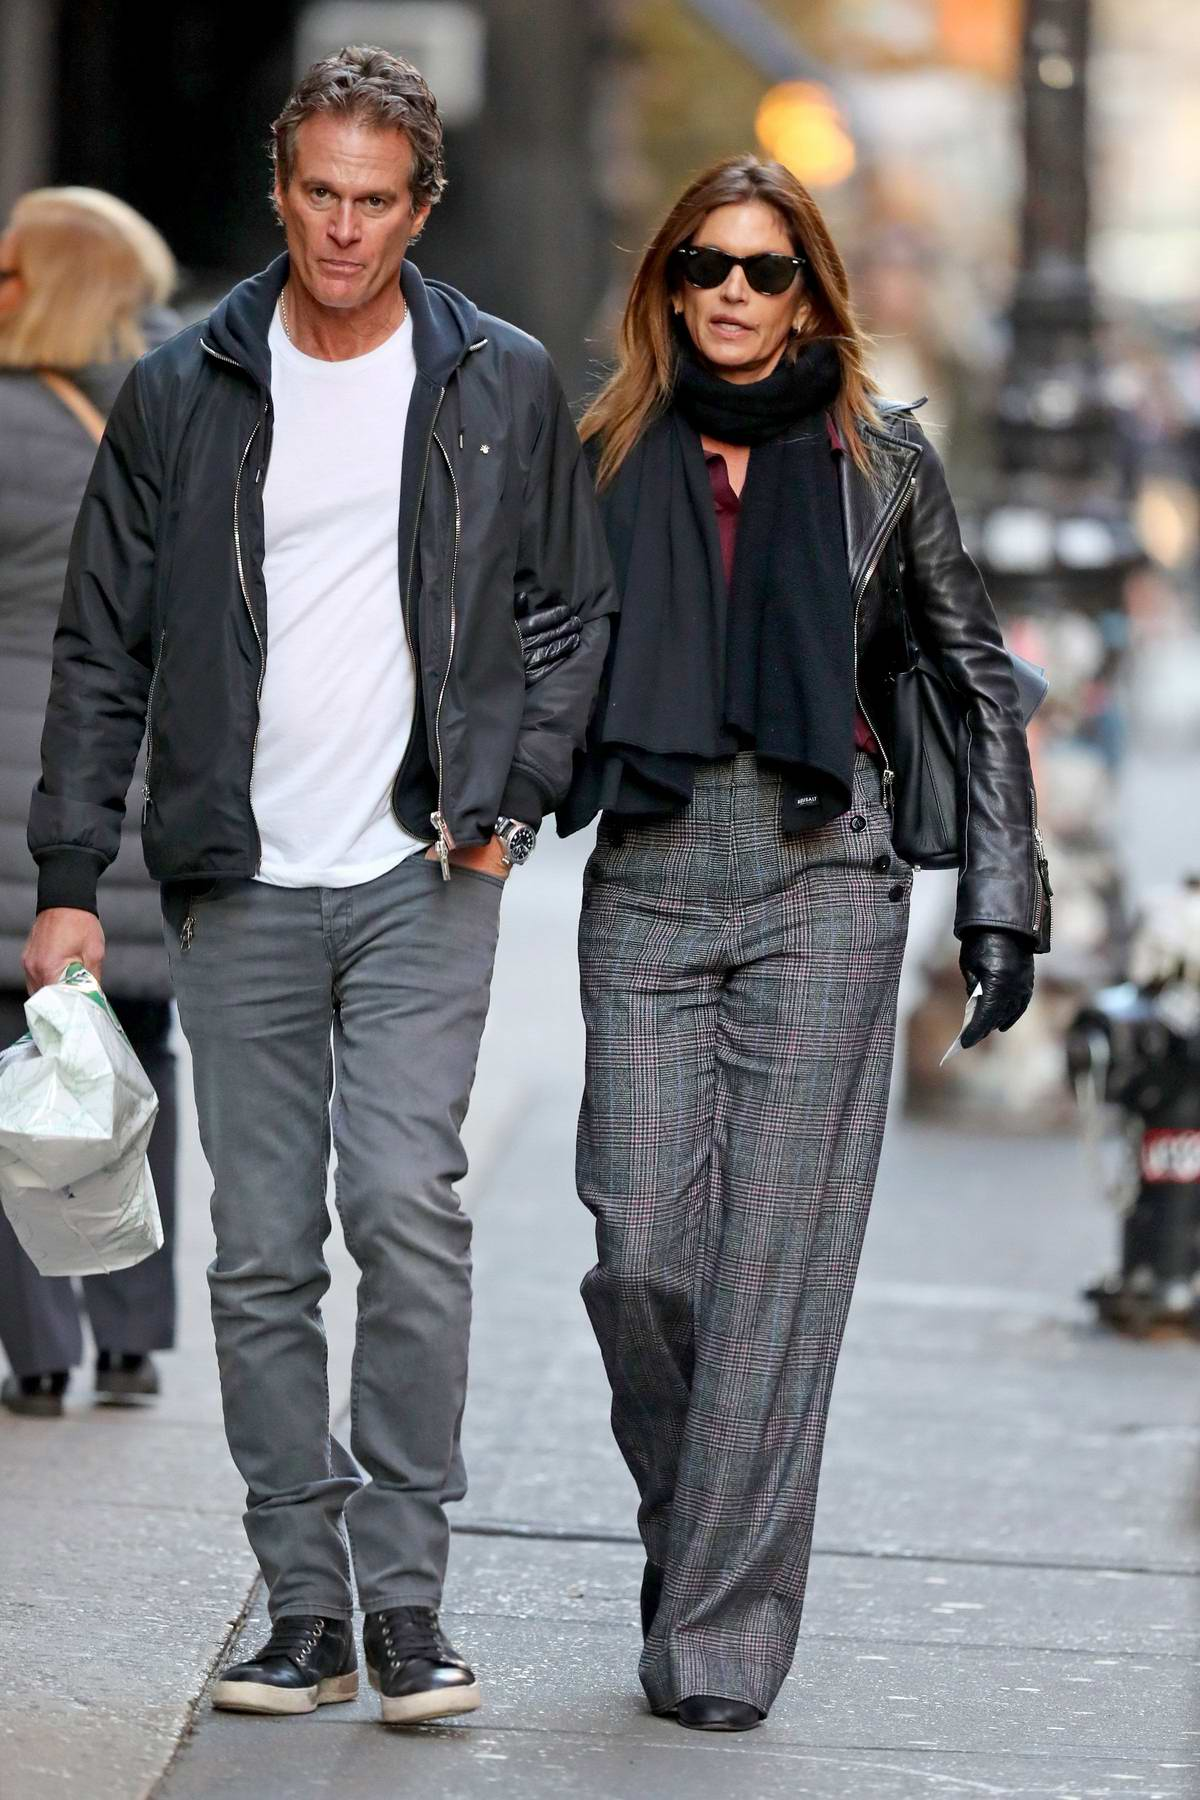 Cindy Crawford and Rande Gerber seen while out for a stroll in New York City